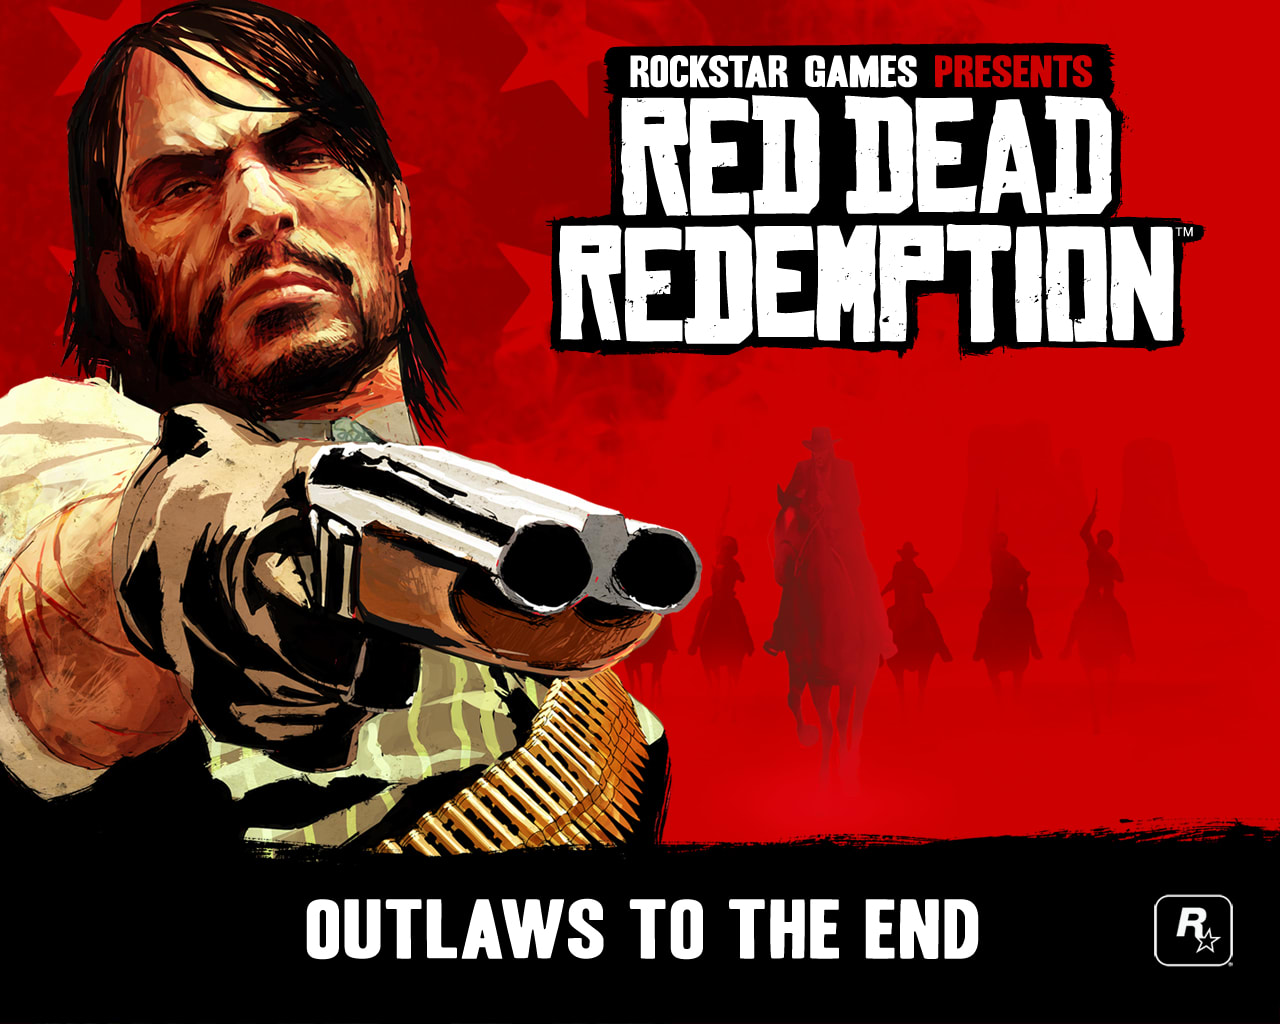 Red Dead Redemption - Wallpaper